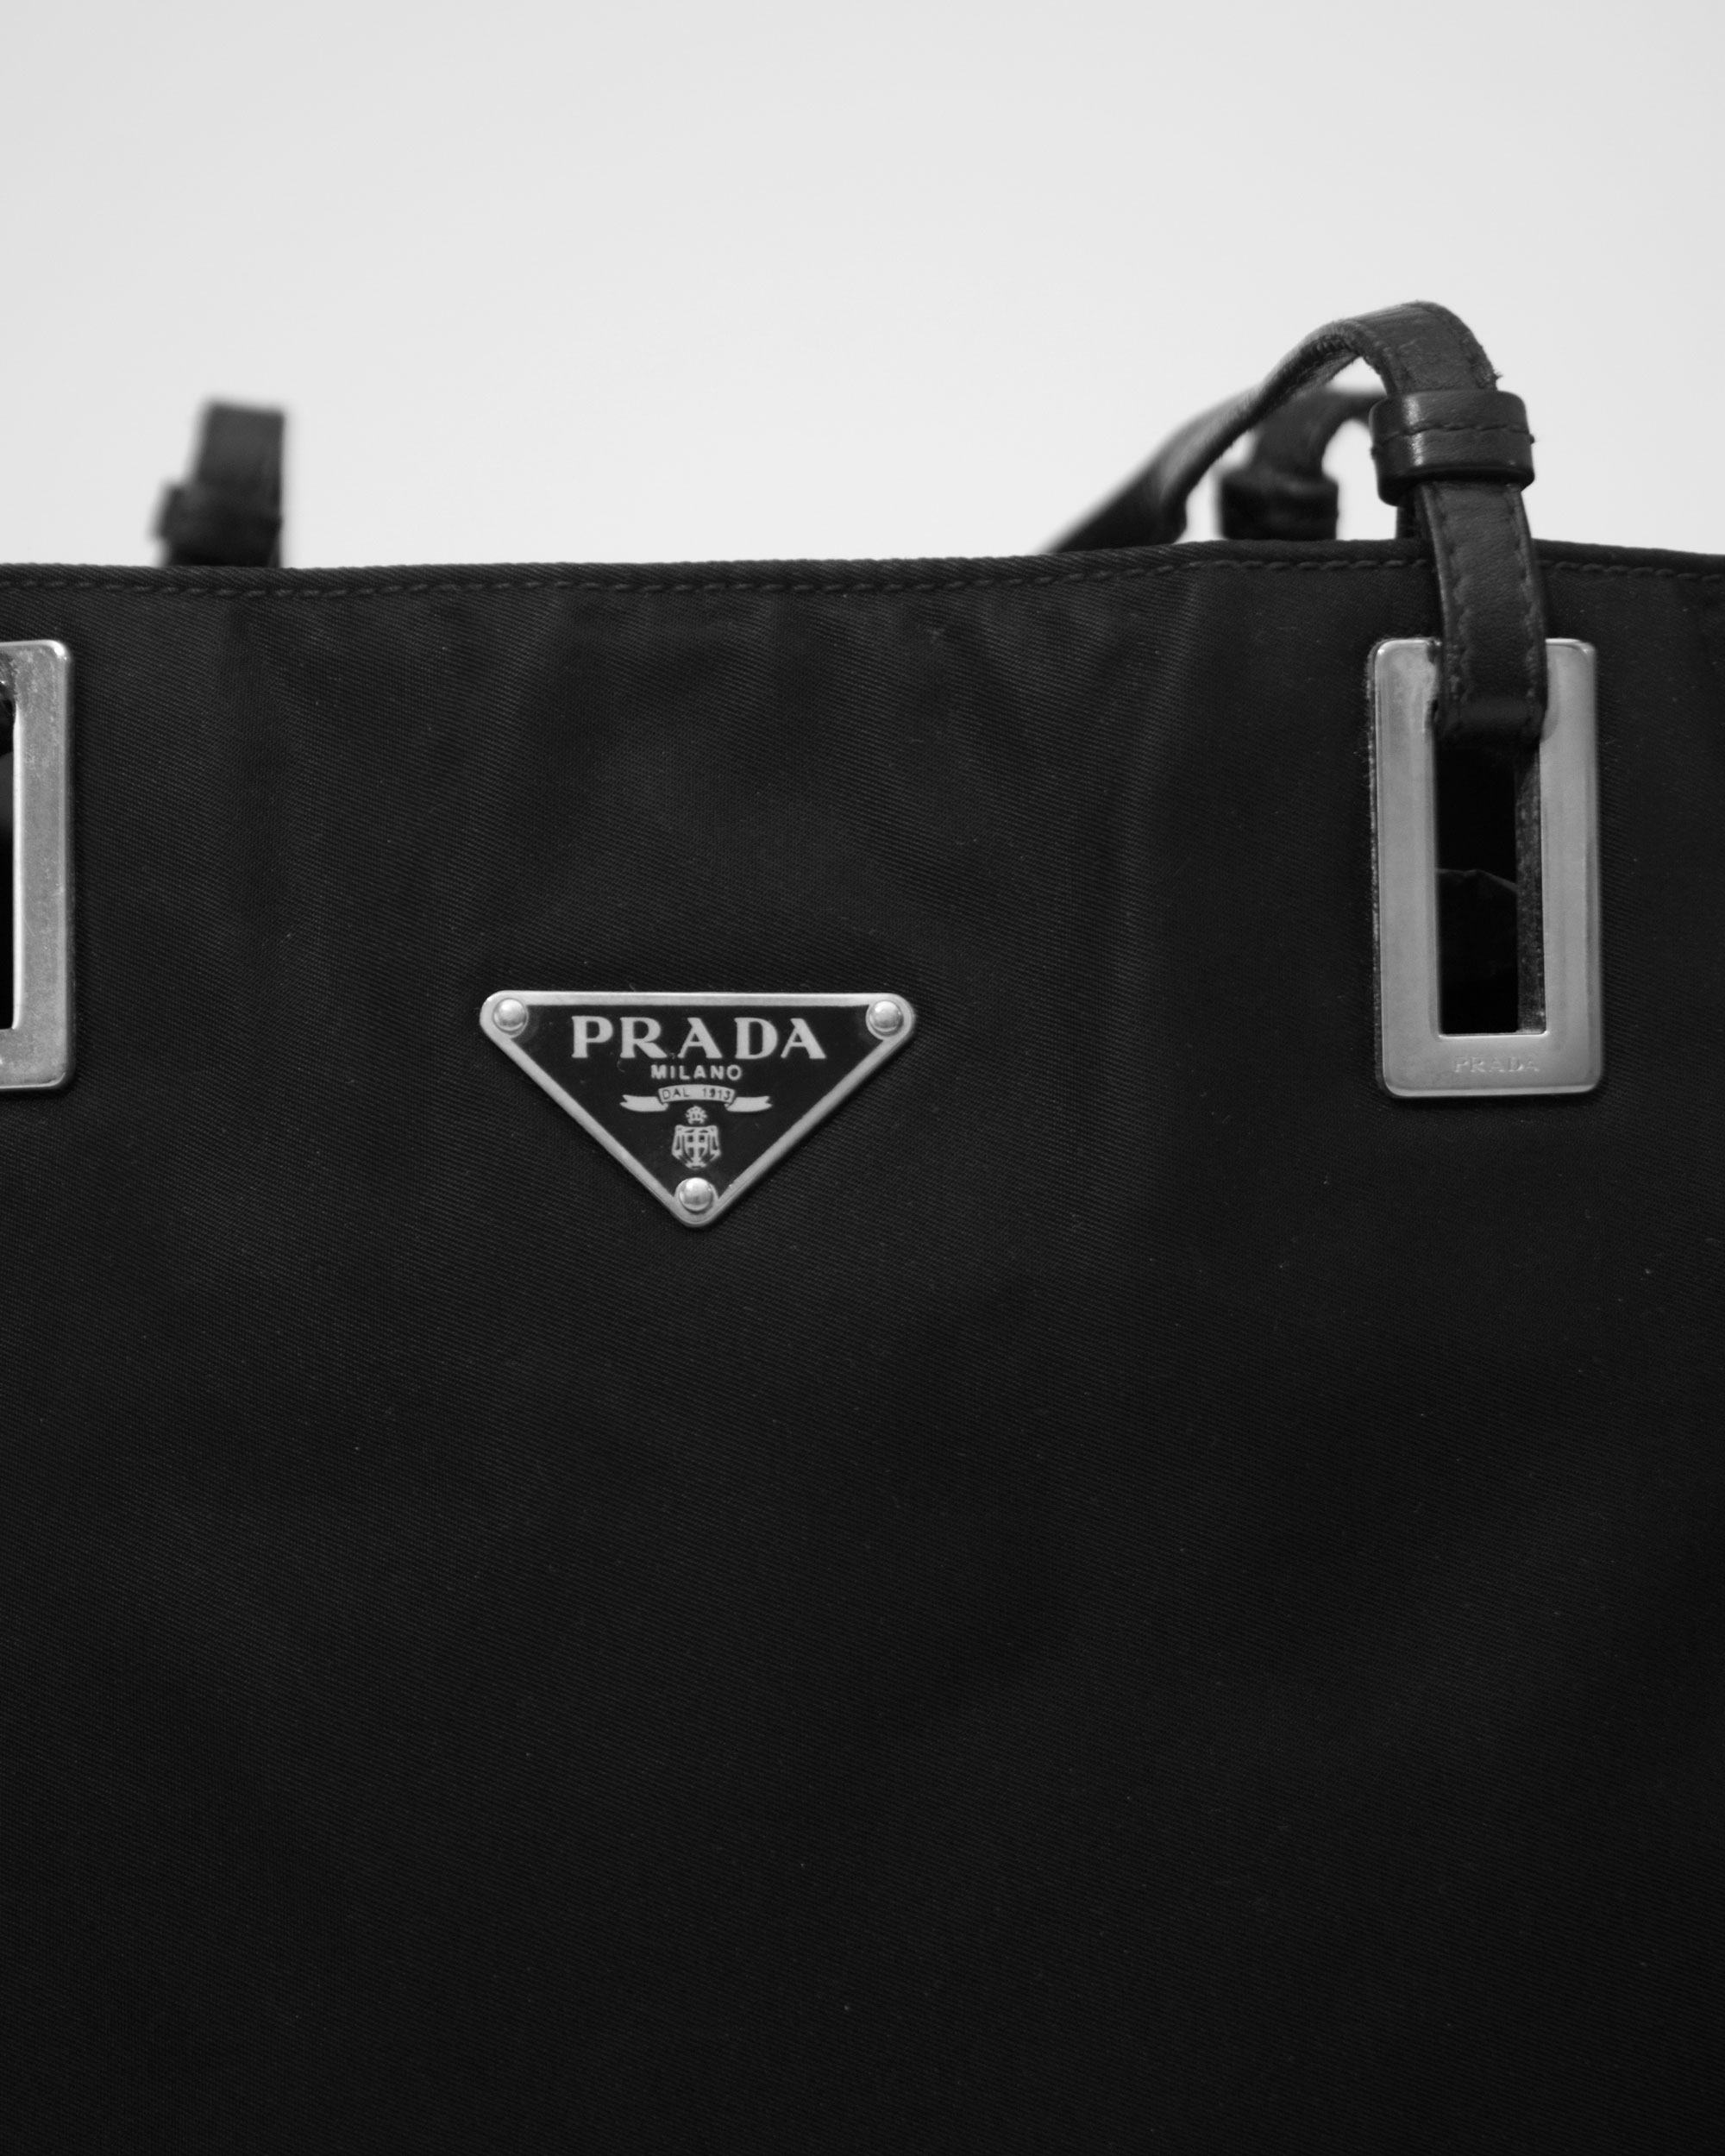 eb61c7fe2d80 Prada Tote Bag. Prada Nylon Tote Bag Shoulder ...